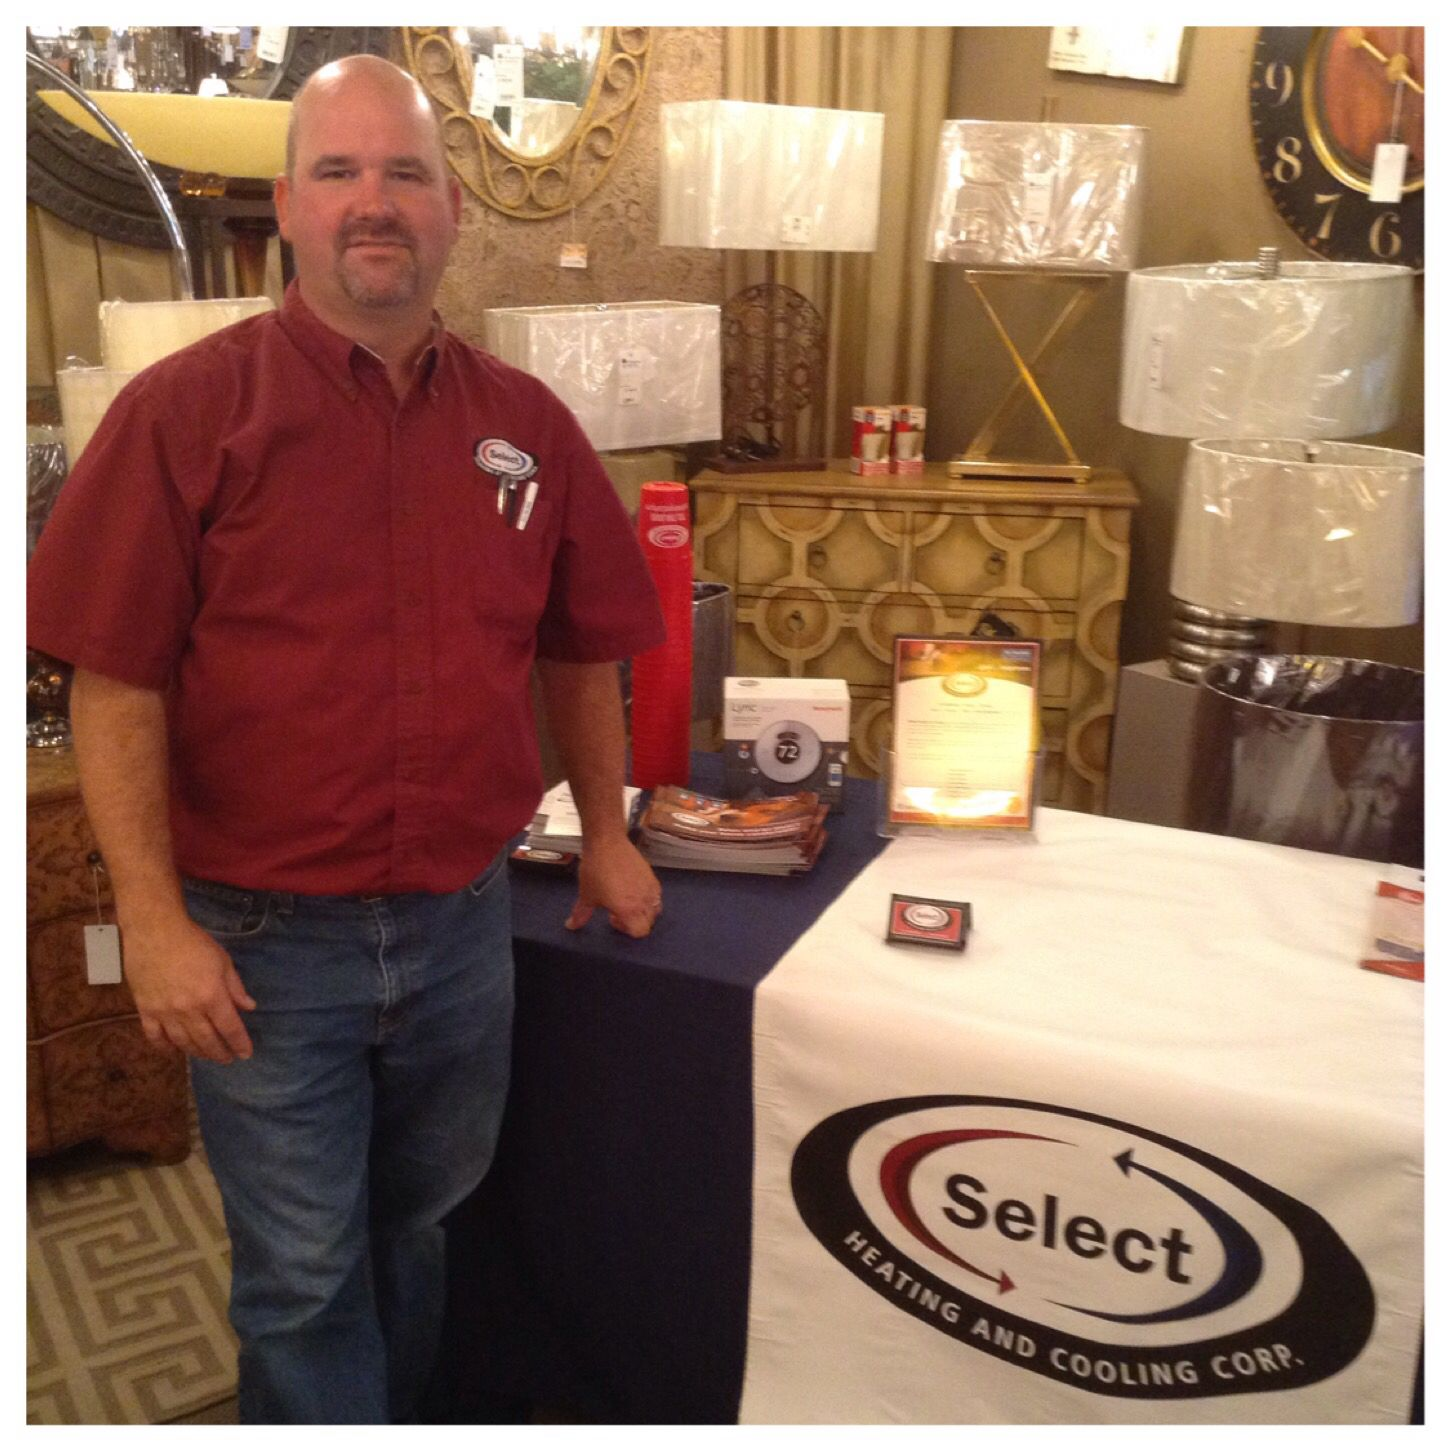 We Had A Great Time With Jim Workman Of Select Heating And Cooling